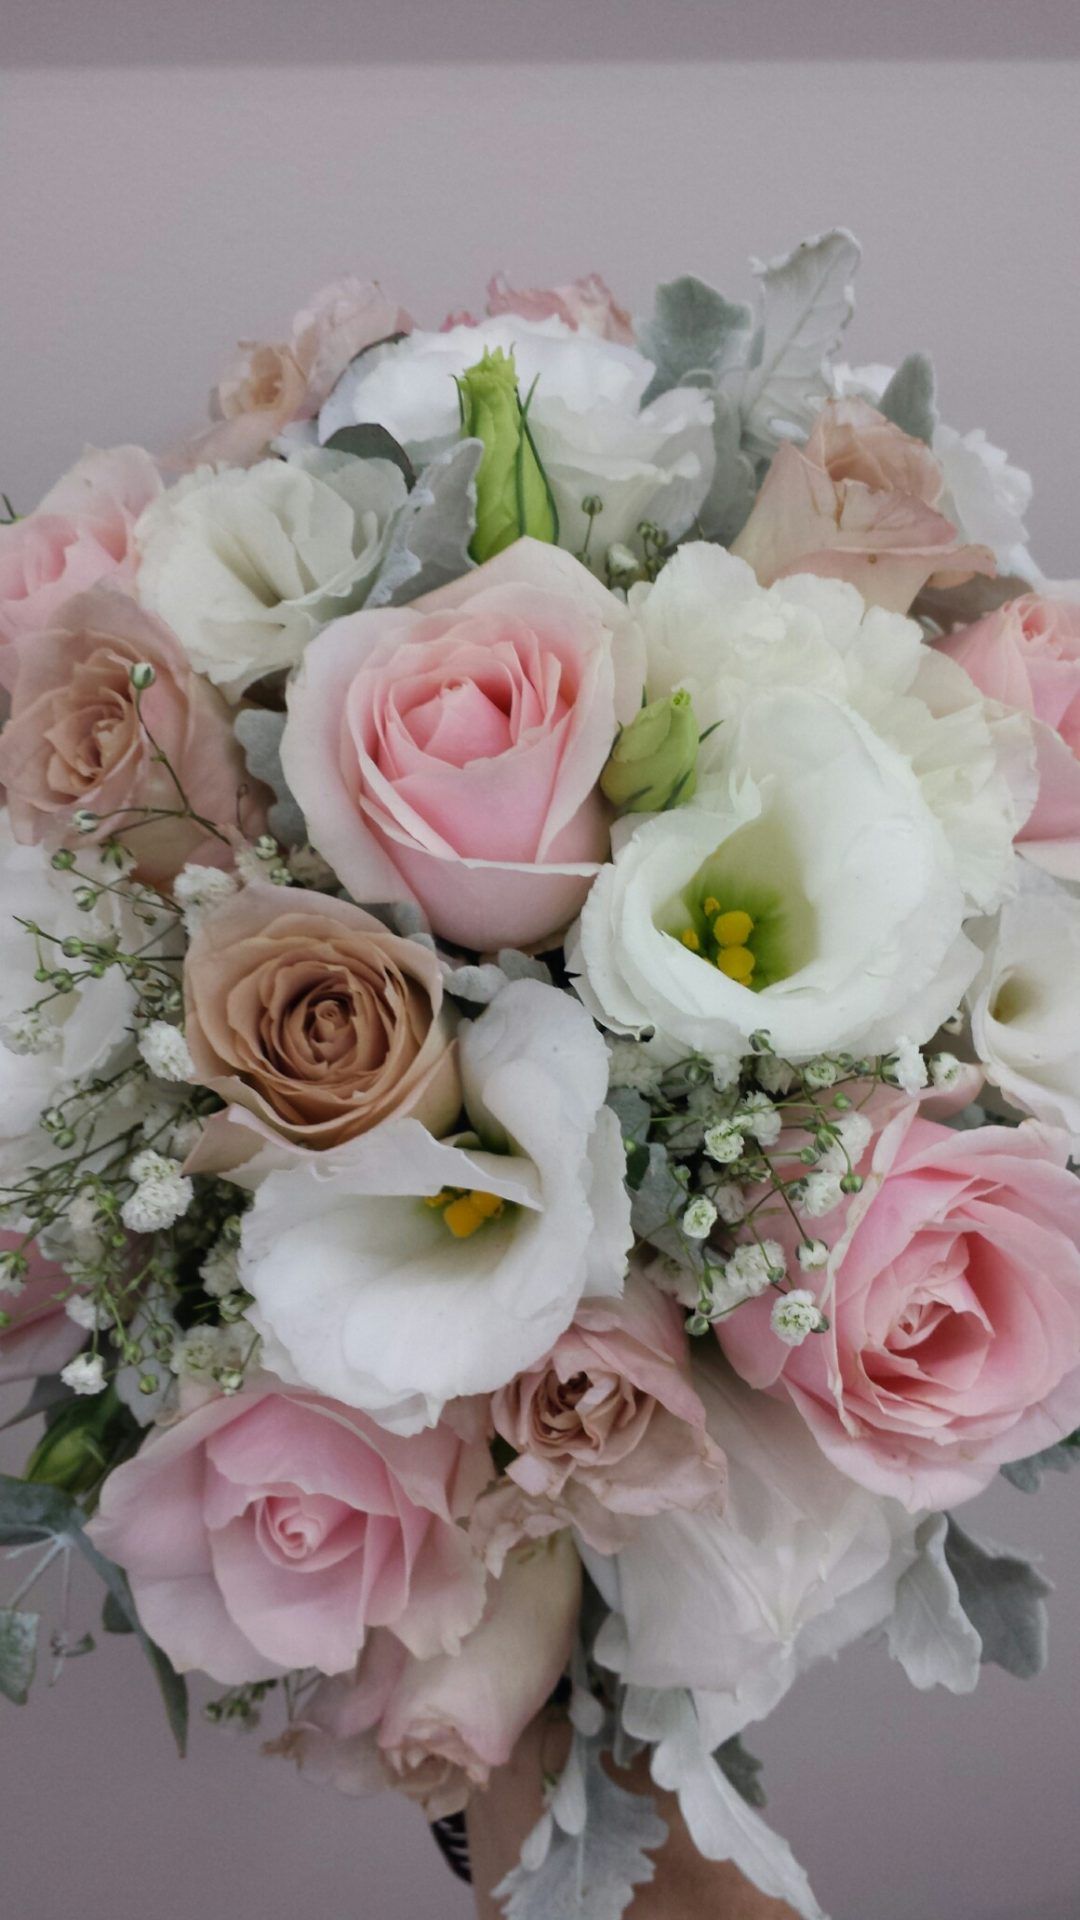 Pale pink roses, lisianthus and gyp